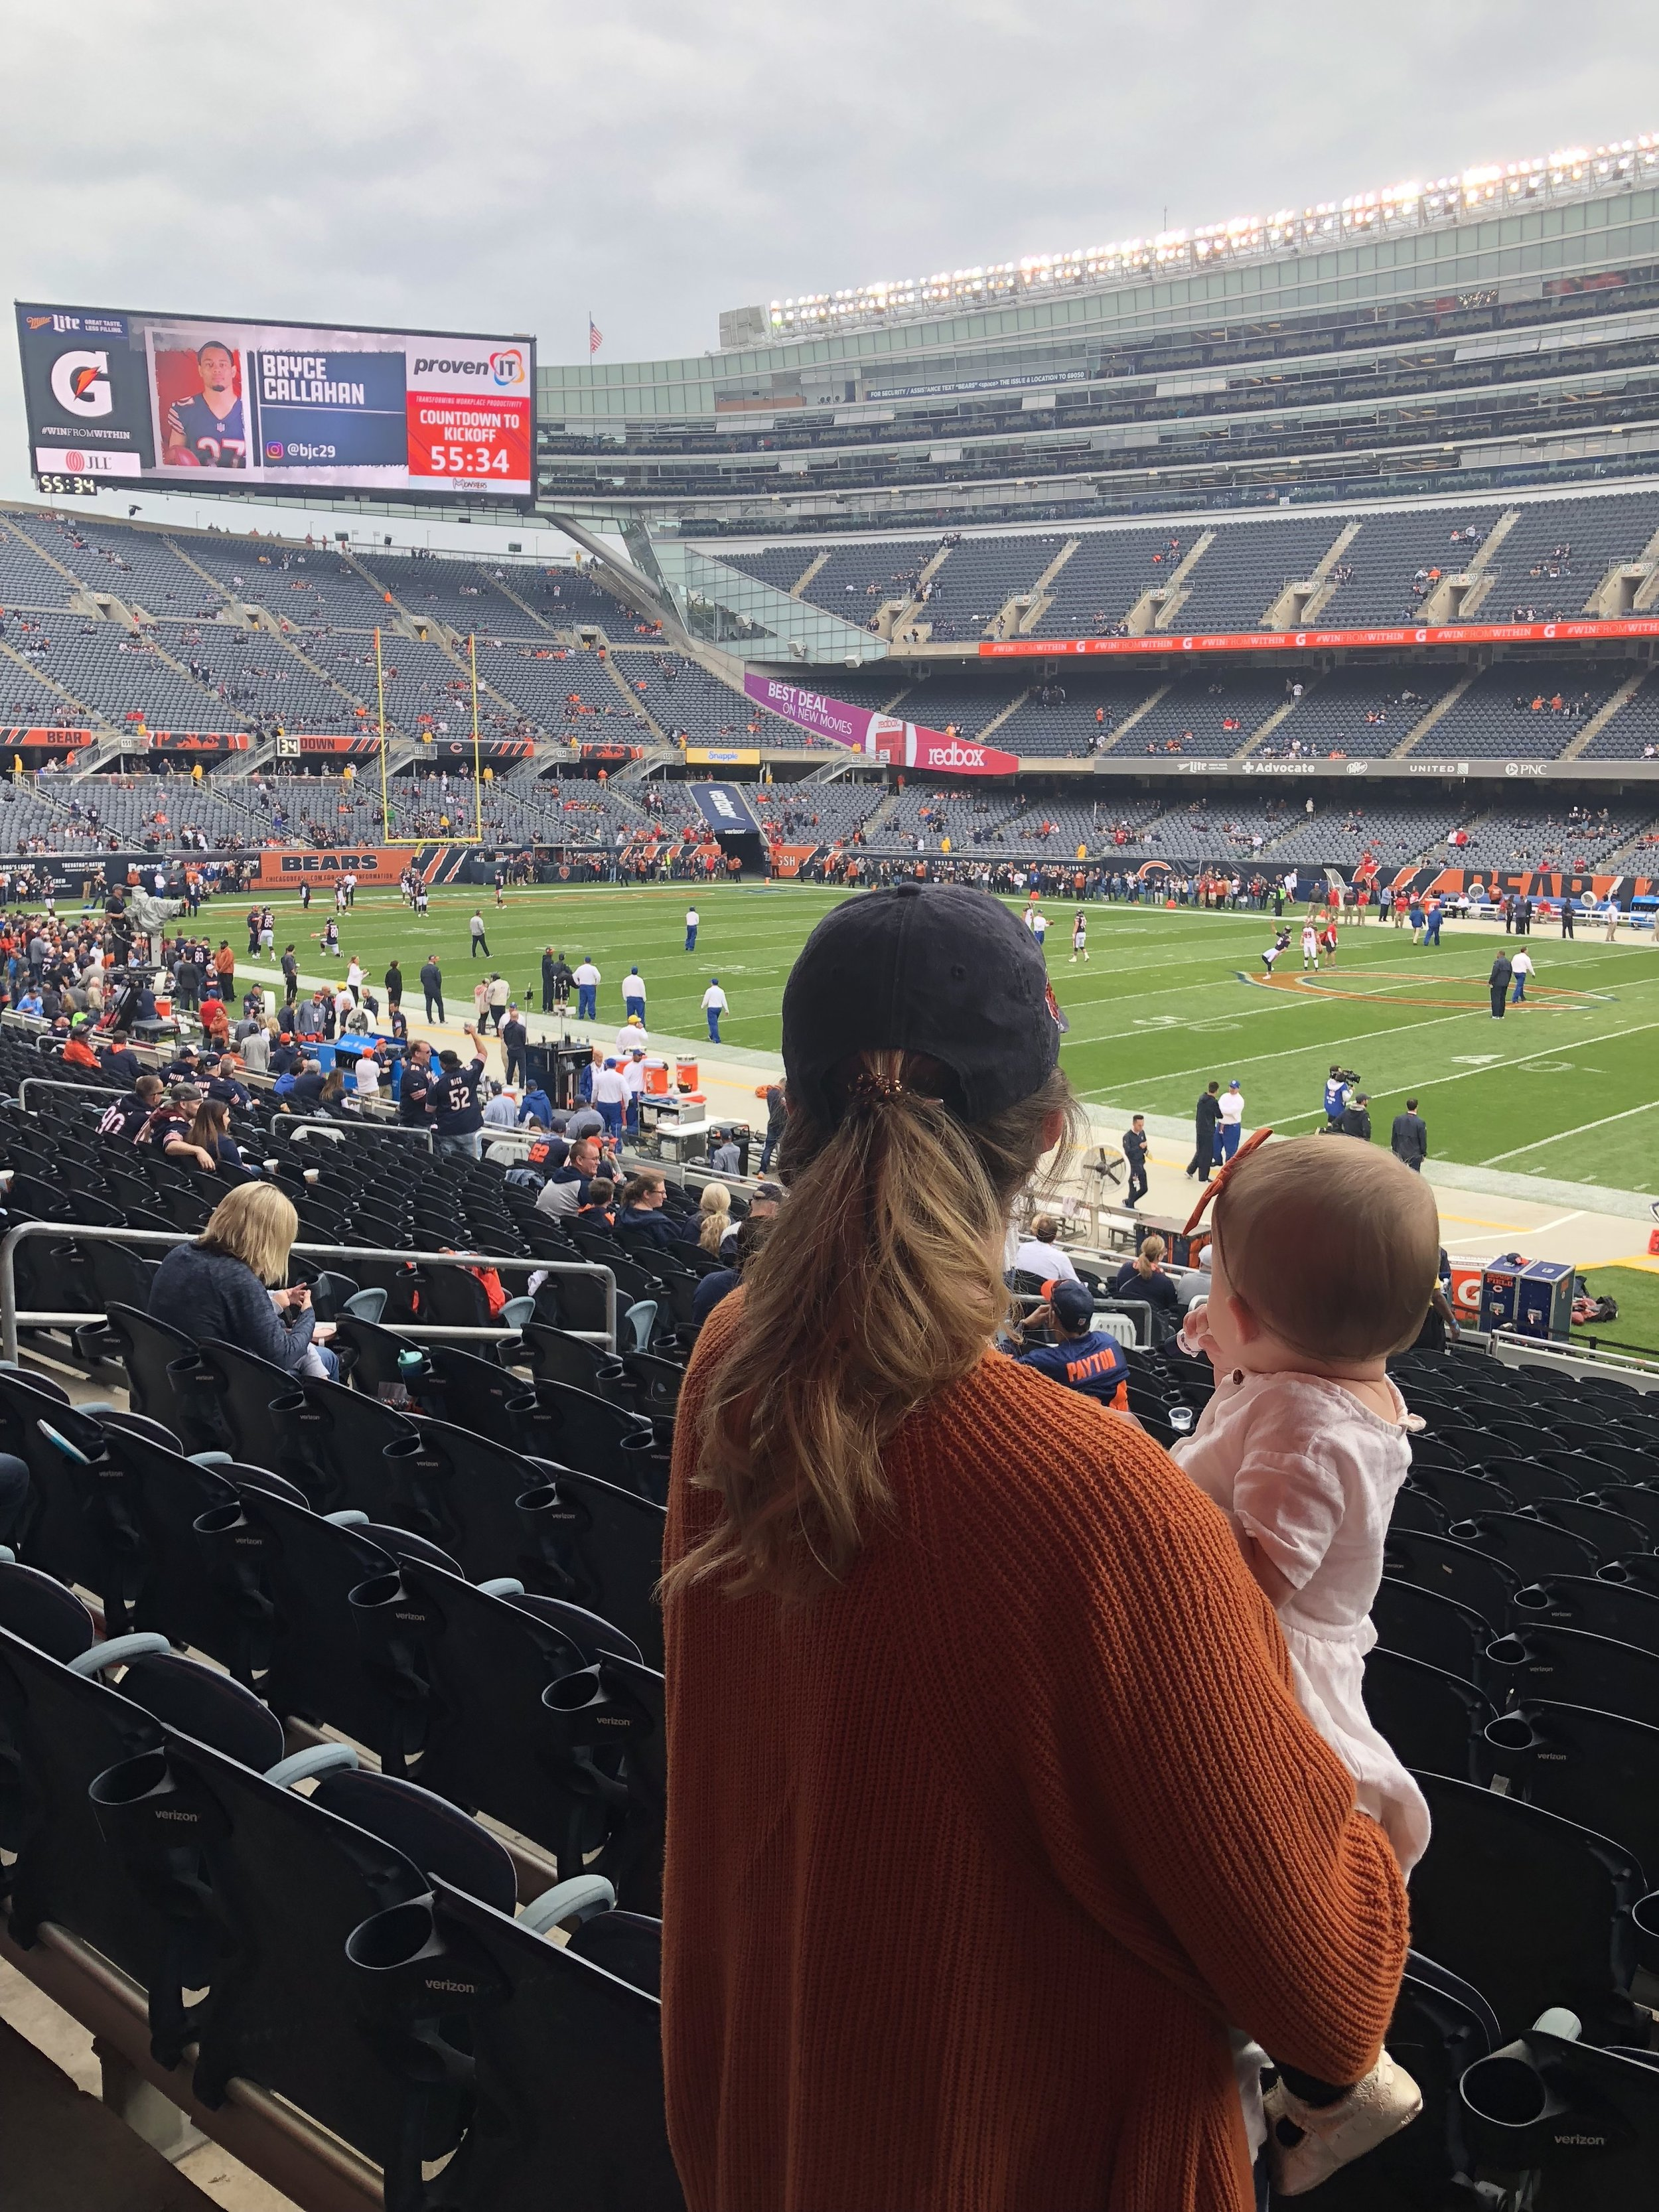 NFL Games, Chicago Bears Football, Mommy & Me